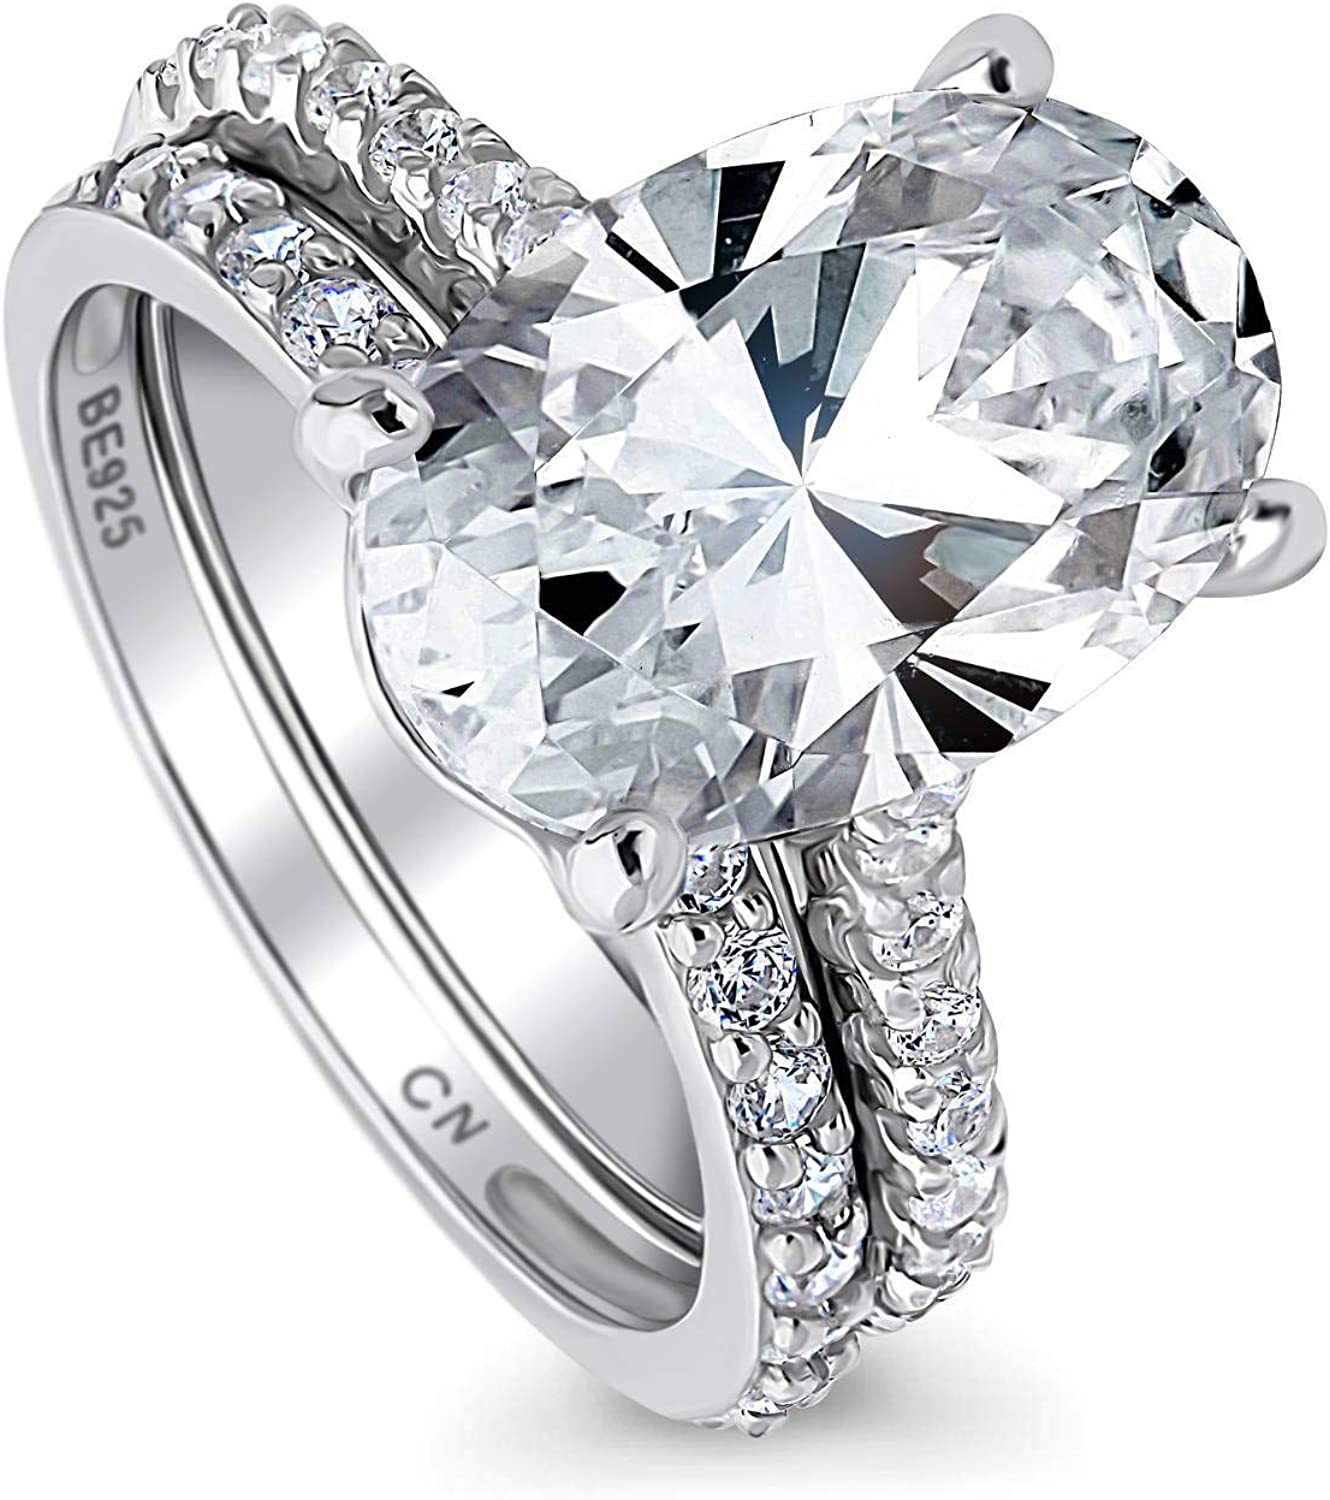 Be super welcome BERRICLE Rhodium Plated Sterling Silver Cut Cubic Oval Zirconia Sale price